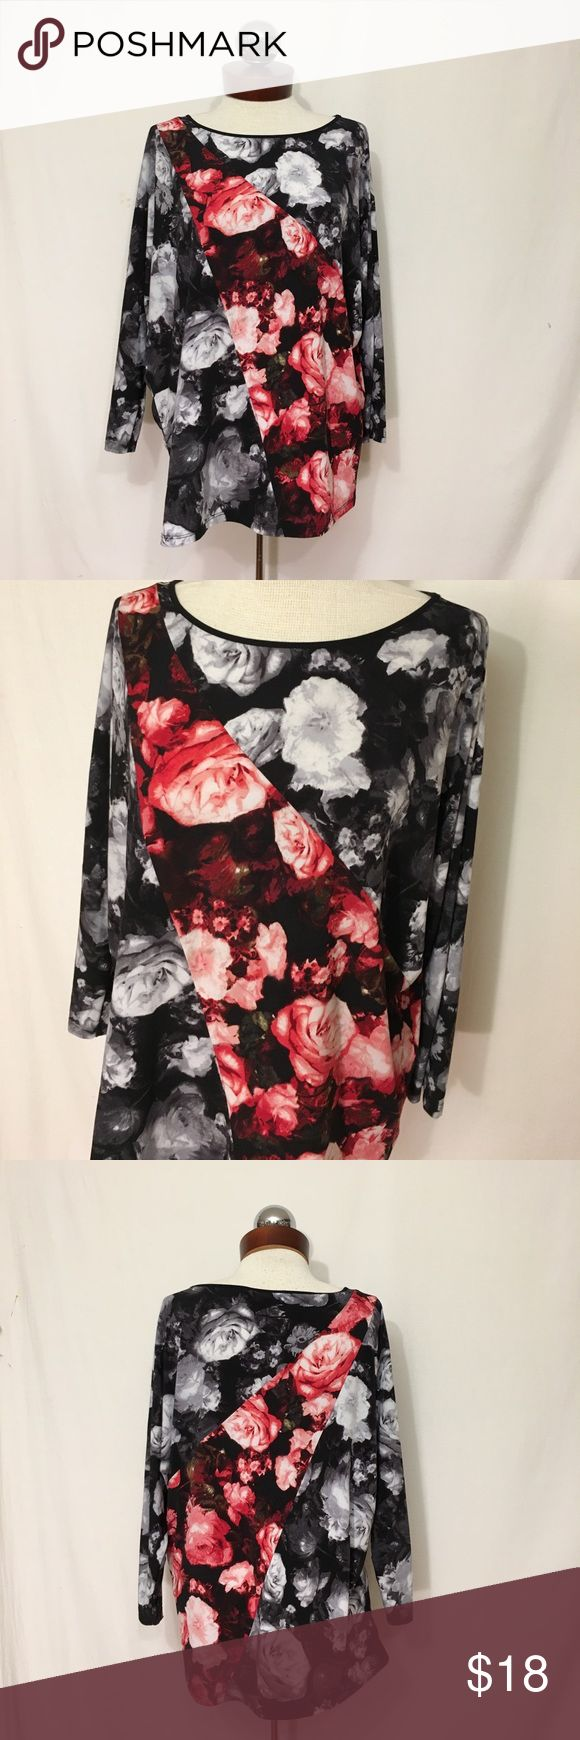 ELLEN TRACY rose print stretch top Excellent condition! A black and white rose floral print is offset by a diagonal fully colored  panel. Dolman cut sleeves, slouchy fit. Polyester/spandex; has stretch. Bust 51 length 26 Ellen Tracy Tops Blouses